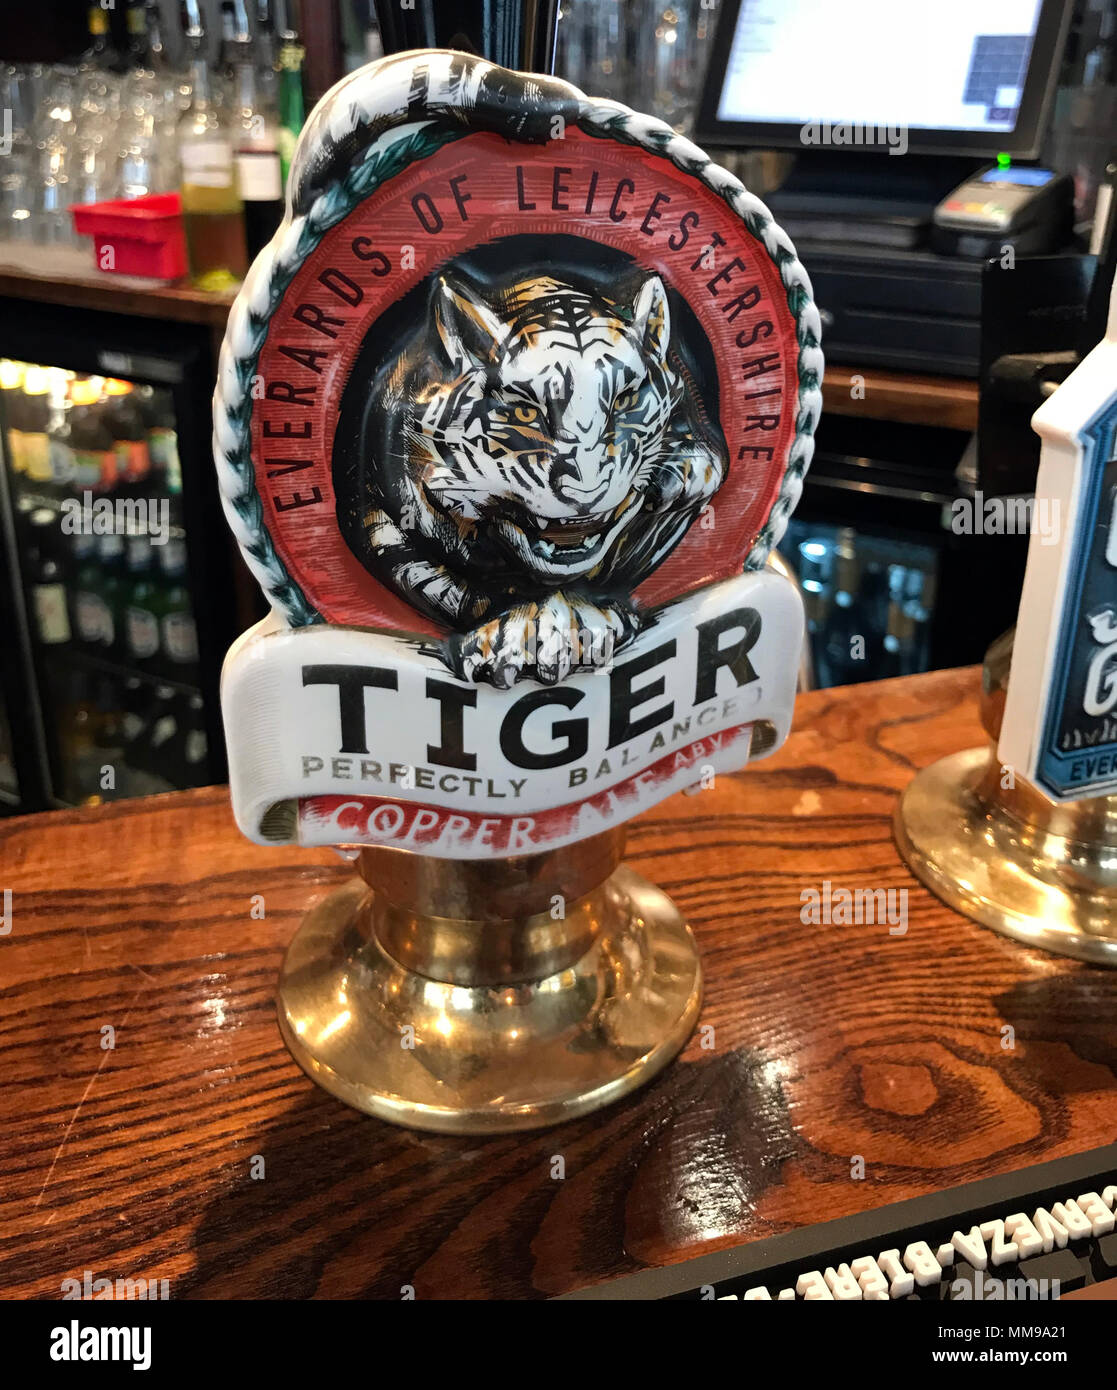 Everards Tiger Beer pumps on a bar, in a traditional English pub, England, UK - Stock Image